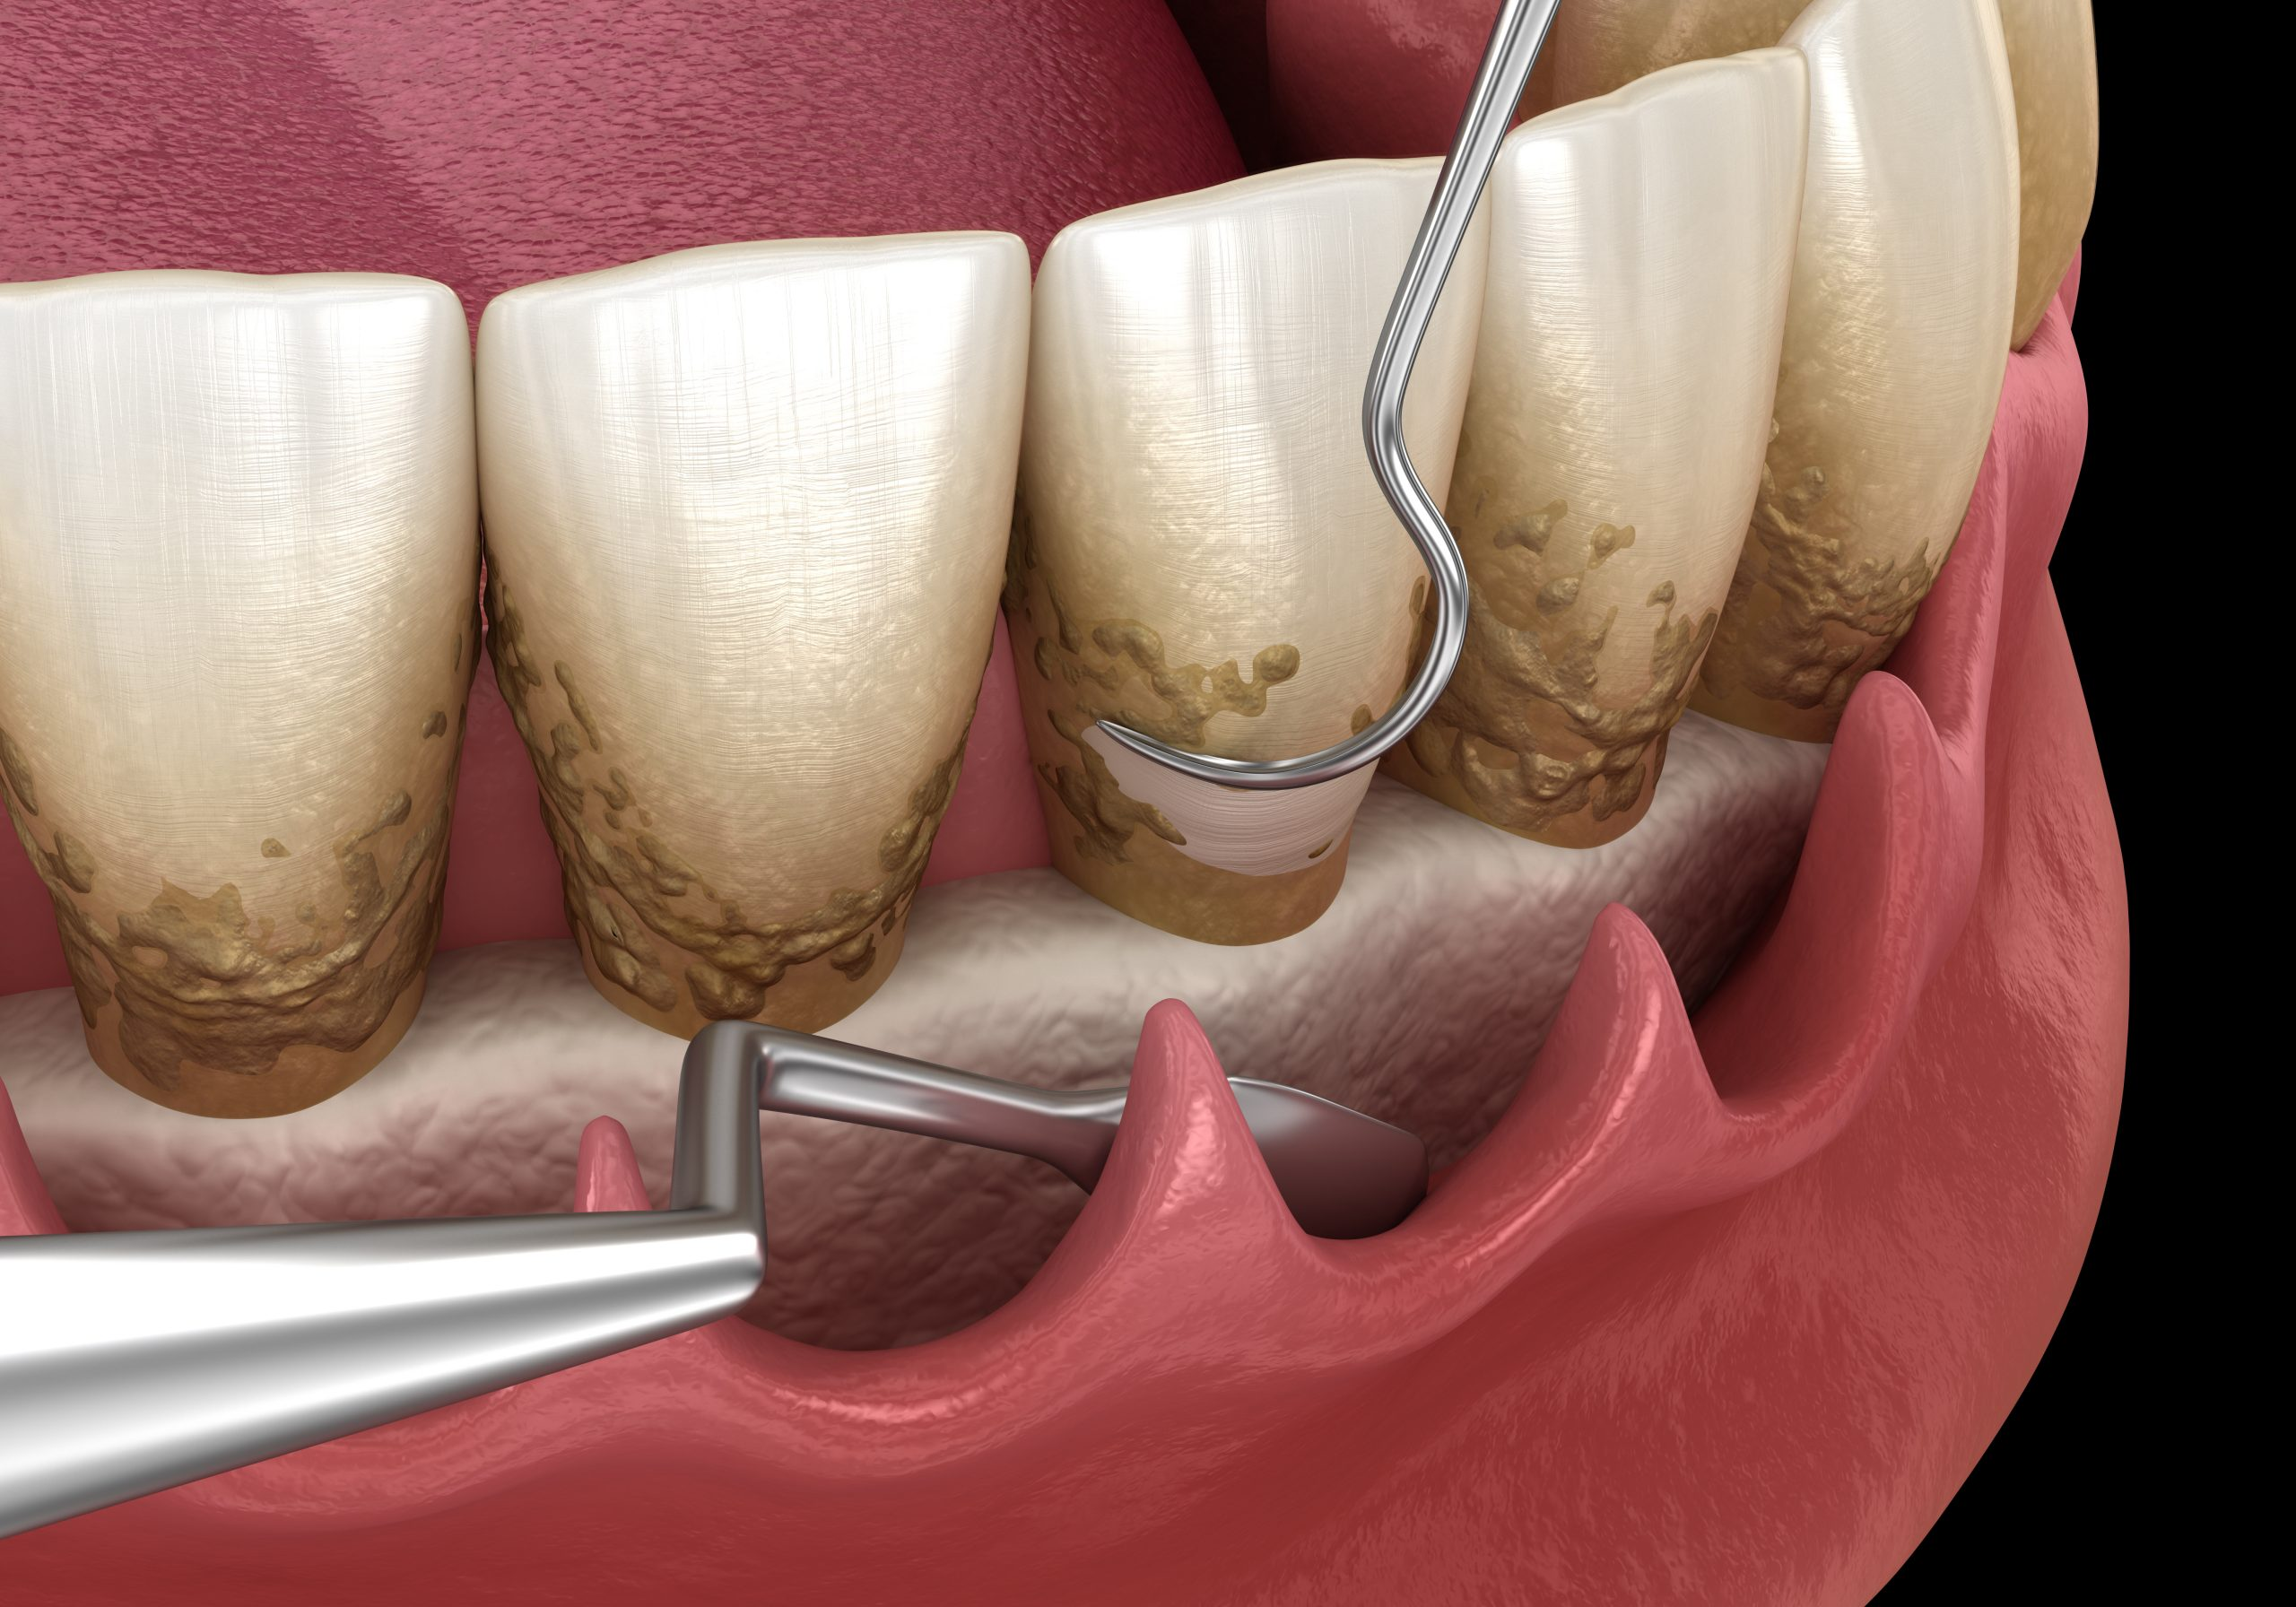 Open curettage: Scaling and root planing (conventional periodontal therapy). Medically accurate 3D illustration of human teeth treatment